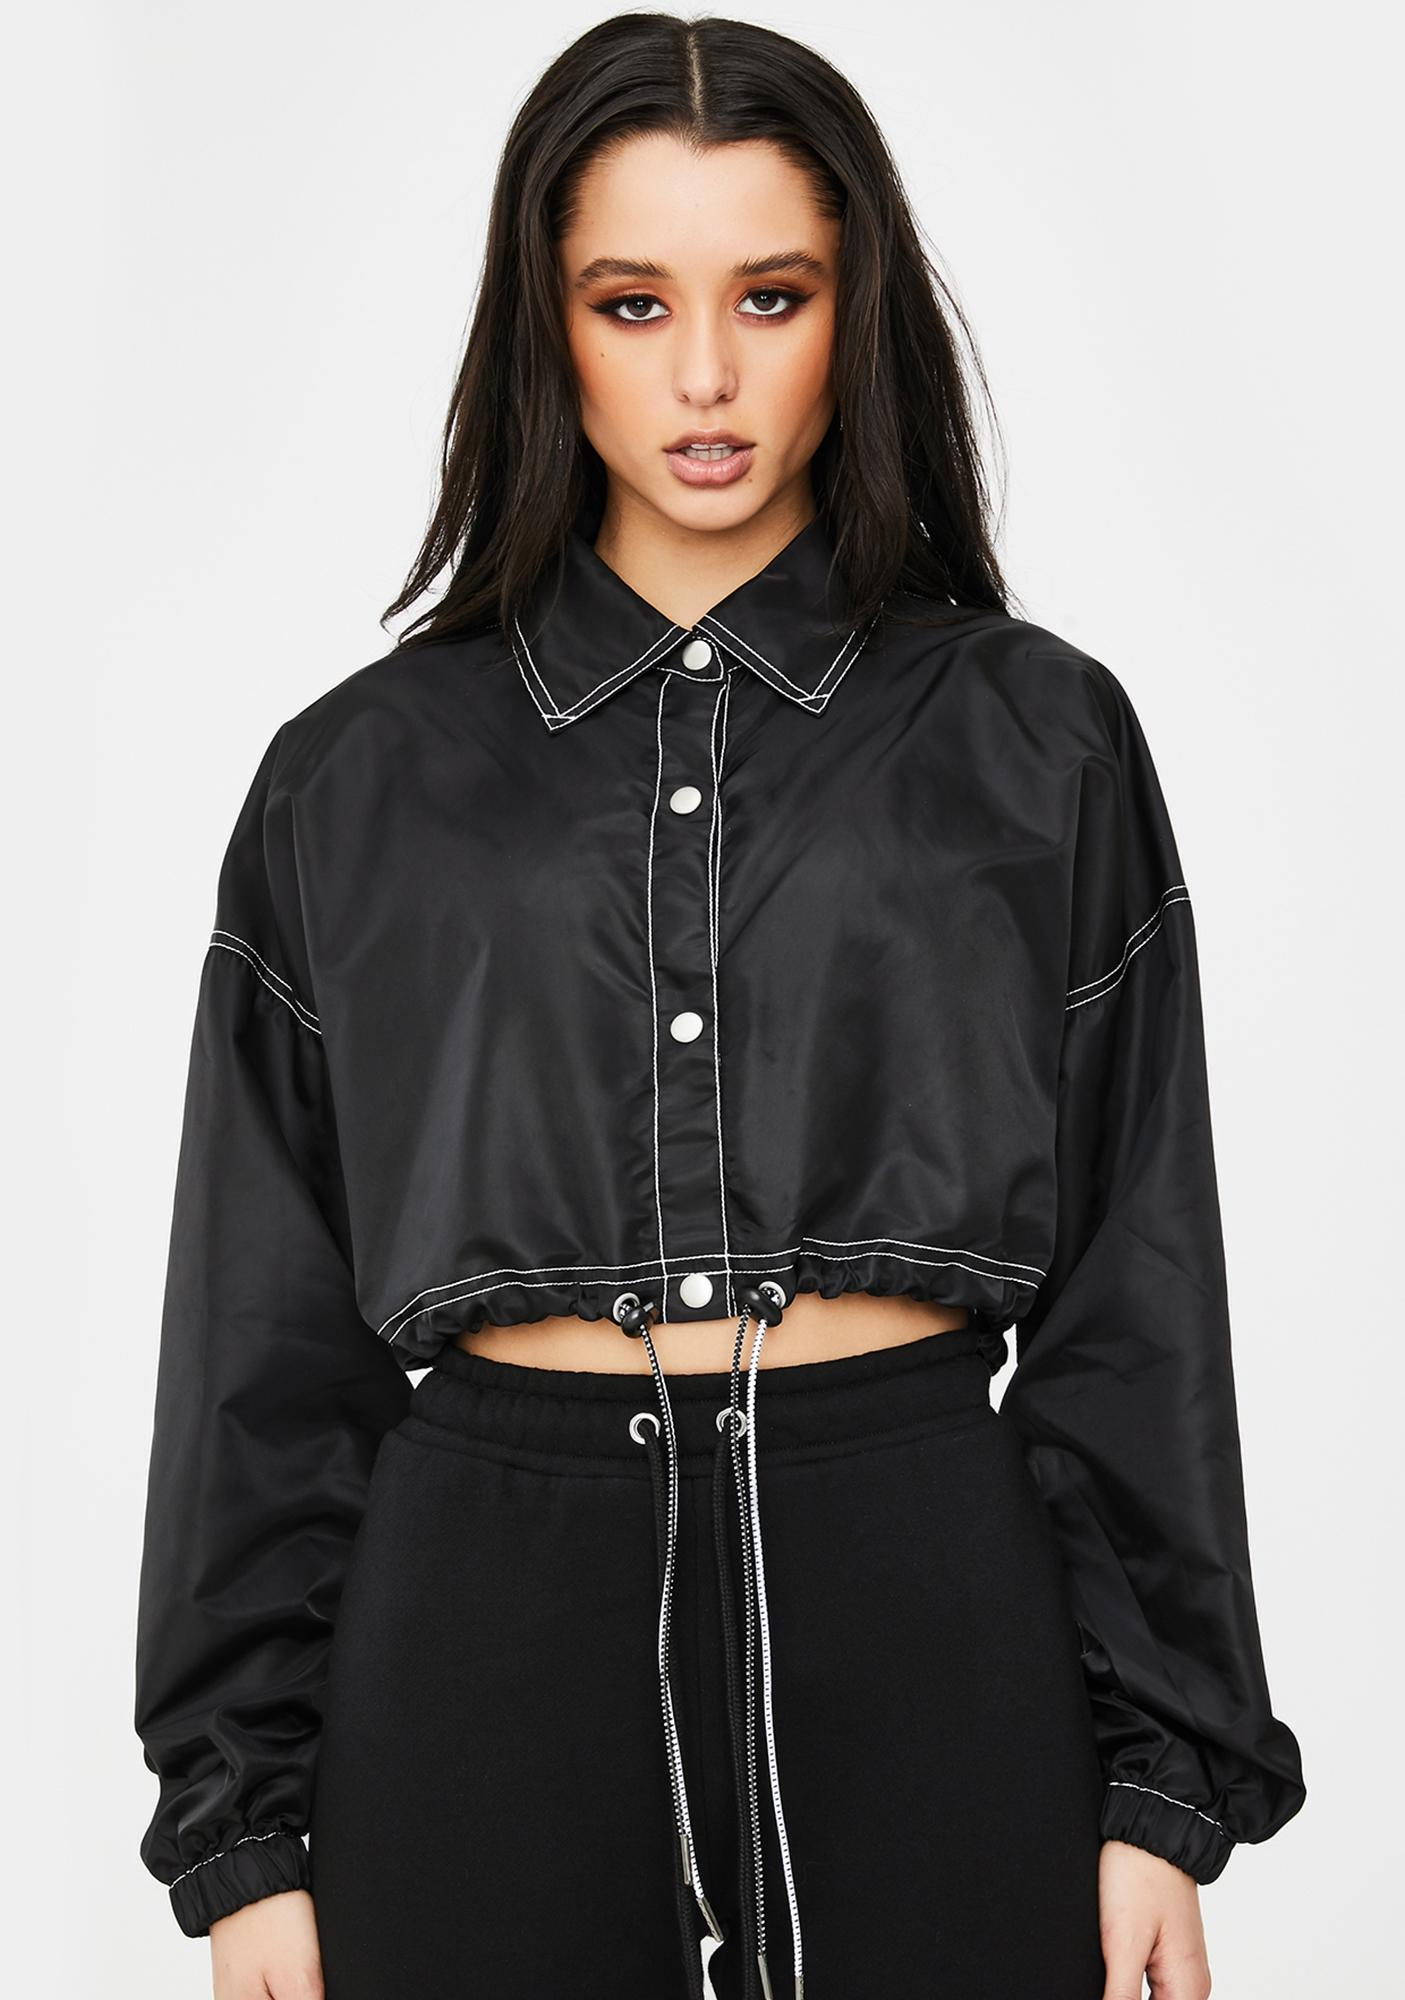 Poster Grl Signed A Contract Crop Jacket